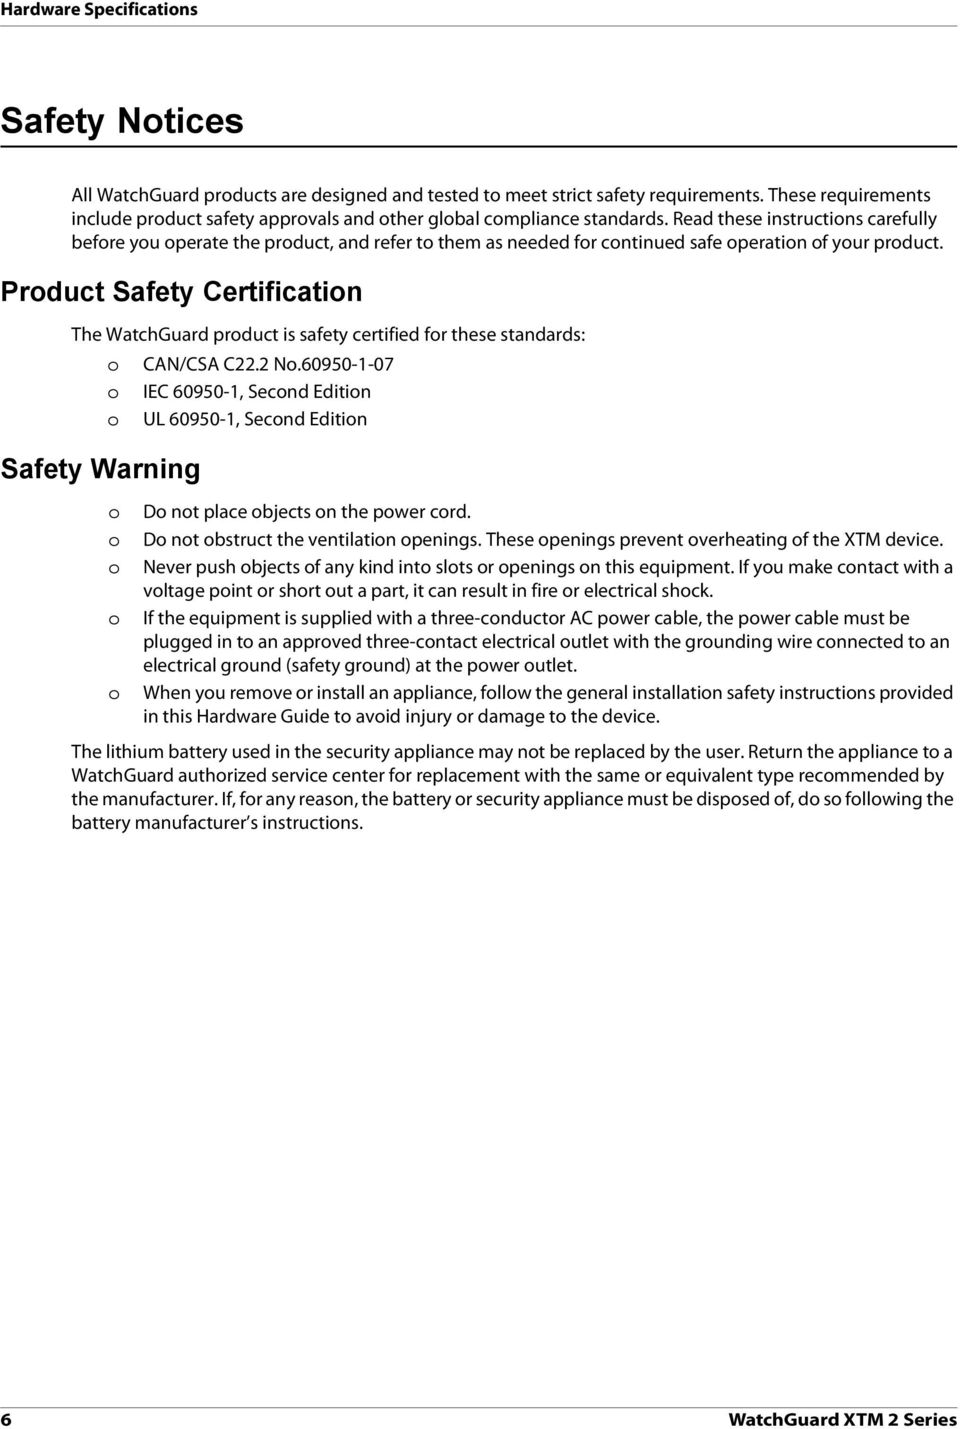 Read these instructions carefully before you operate the product, and refer to them as needed for continued safe operation of your product.